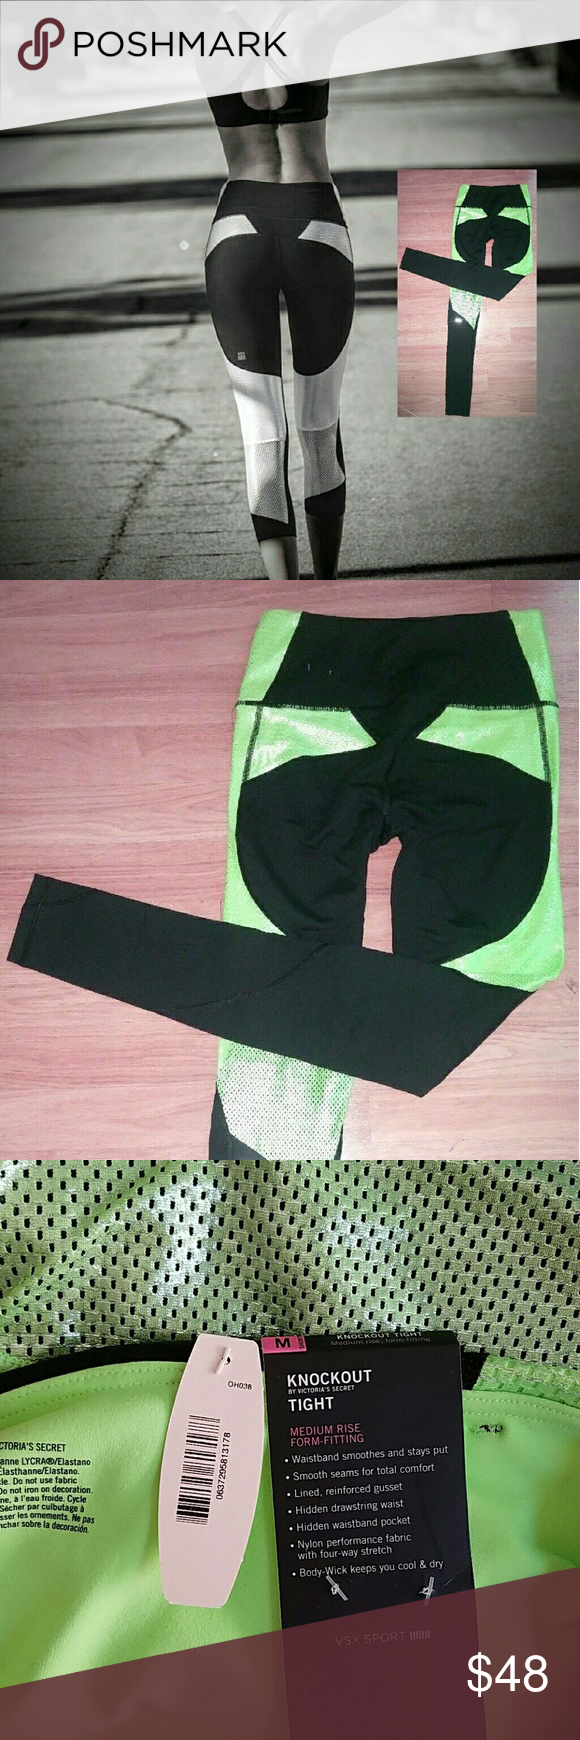 VSX KNOCKOUT tights Med/Short reflective green NWT Victoria's Secret vsx sport knockout tight. It is a medium-short, medium-rise, form-fitting. Hidden drawstring and hidden waistband pocket add to its convenience. Nylon performance fabric with 4-way stretch. Body-wick keeps you cool and dry. Victoria's Secret Pants Leggings